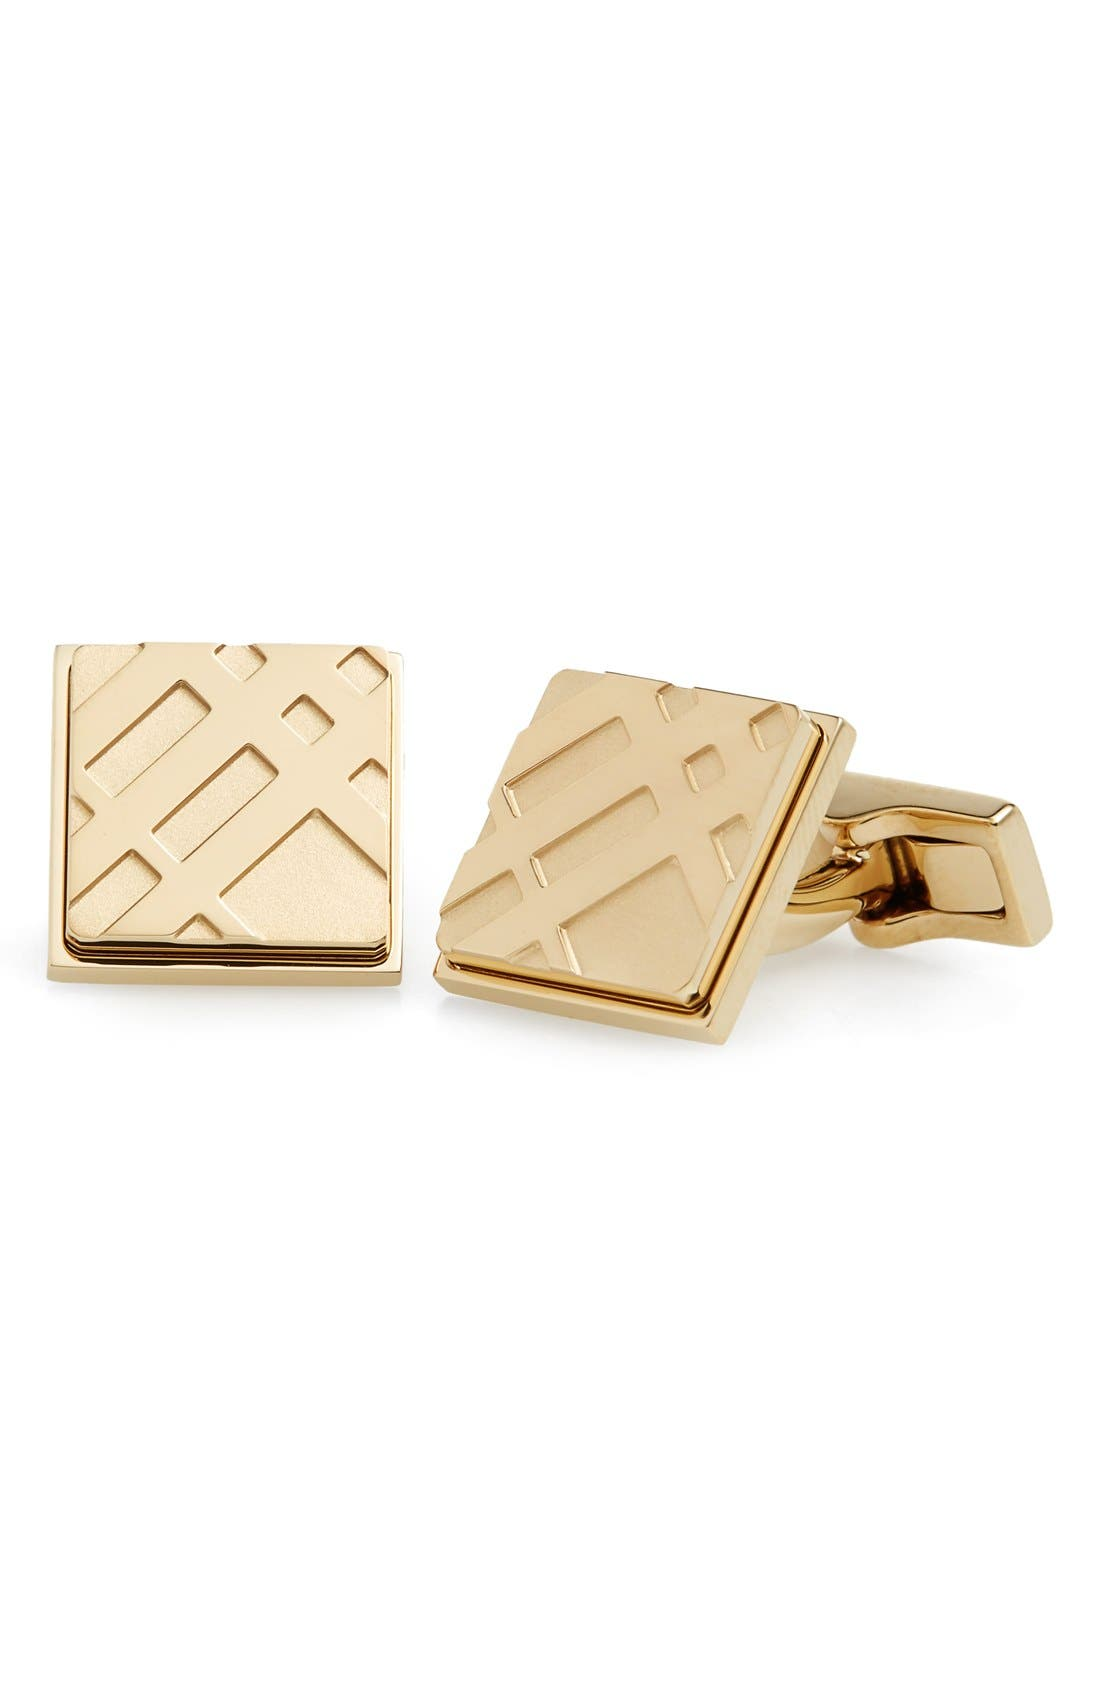 Square Cuff Links,                         Main,                         color, Pale Gold